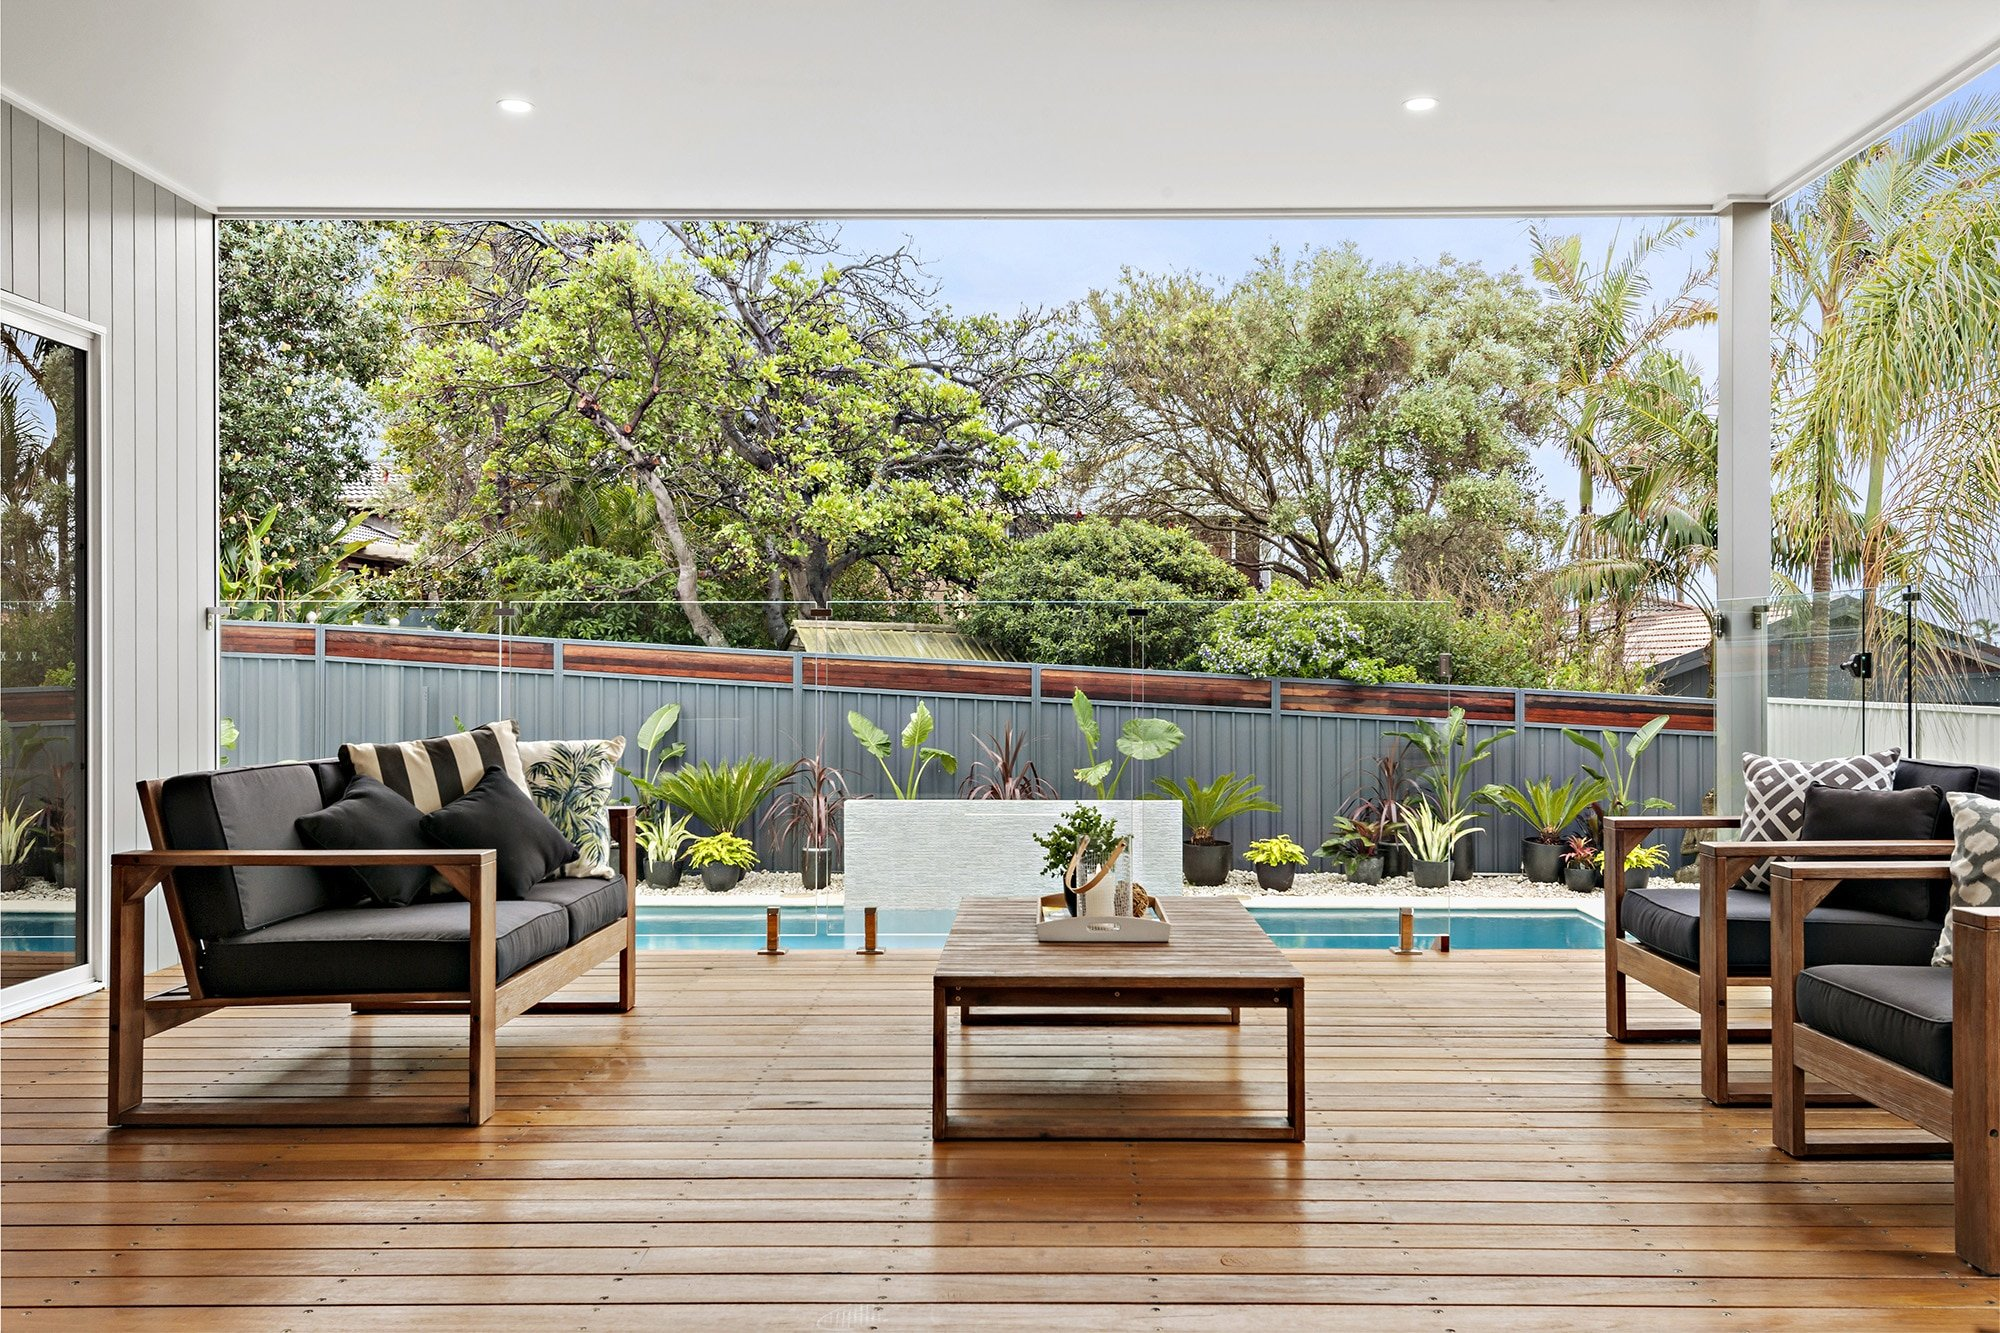 Bligh Street | Caves Beach - https://www.peonyandsilk.com.au/wp-content/uploads/2019/03/3-Terrace.jpg